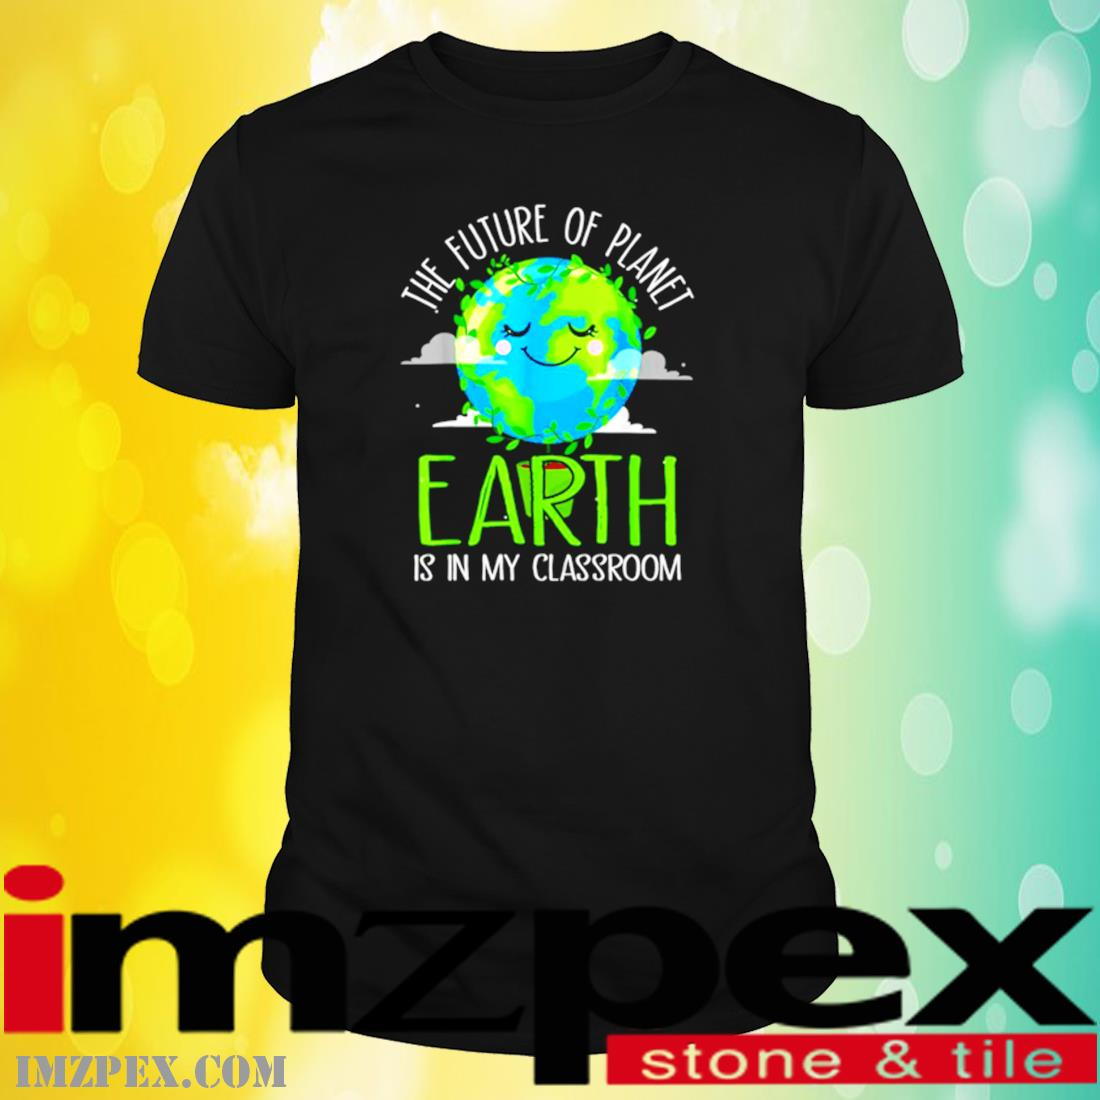 The Future Of Planet Earth Is In My Classroom Shirt